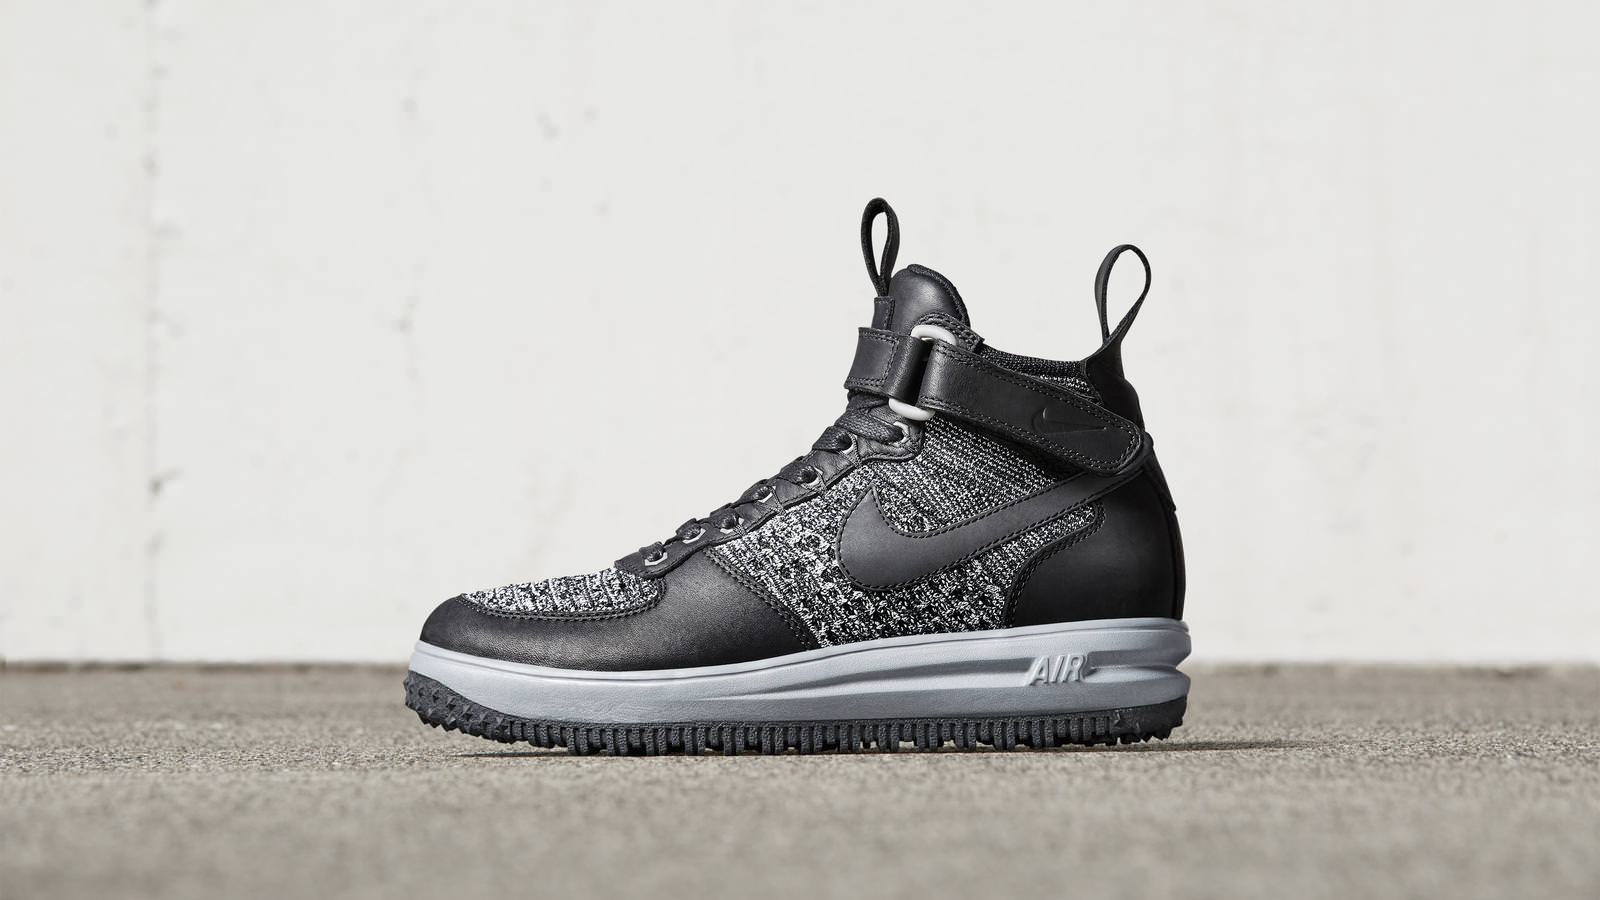 58194885a4bfa69a4ded423c_161026_footwear_sneakerboot_p_0041r_hd_1600